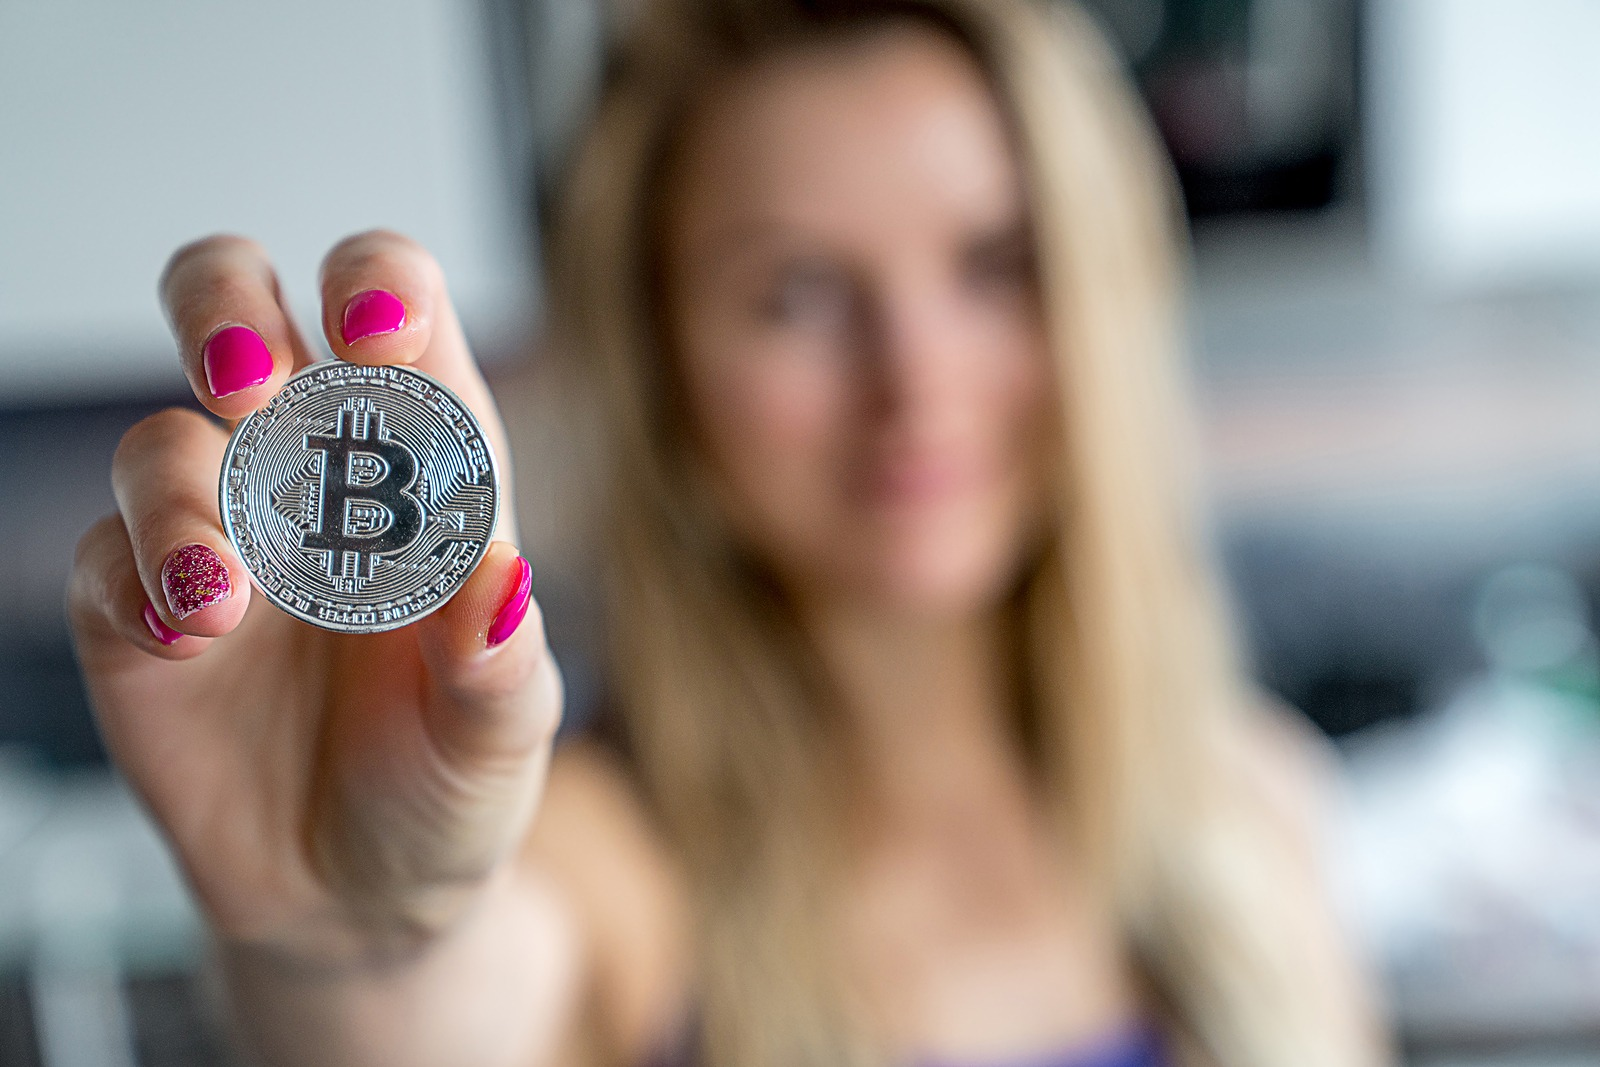 Cryptocurrency Safety: 3 Best Security Tips